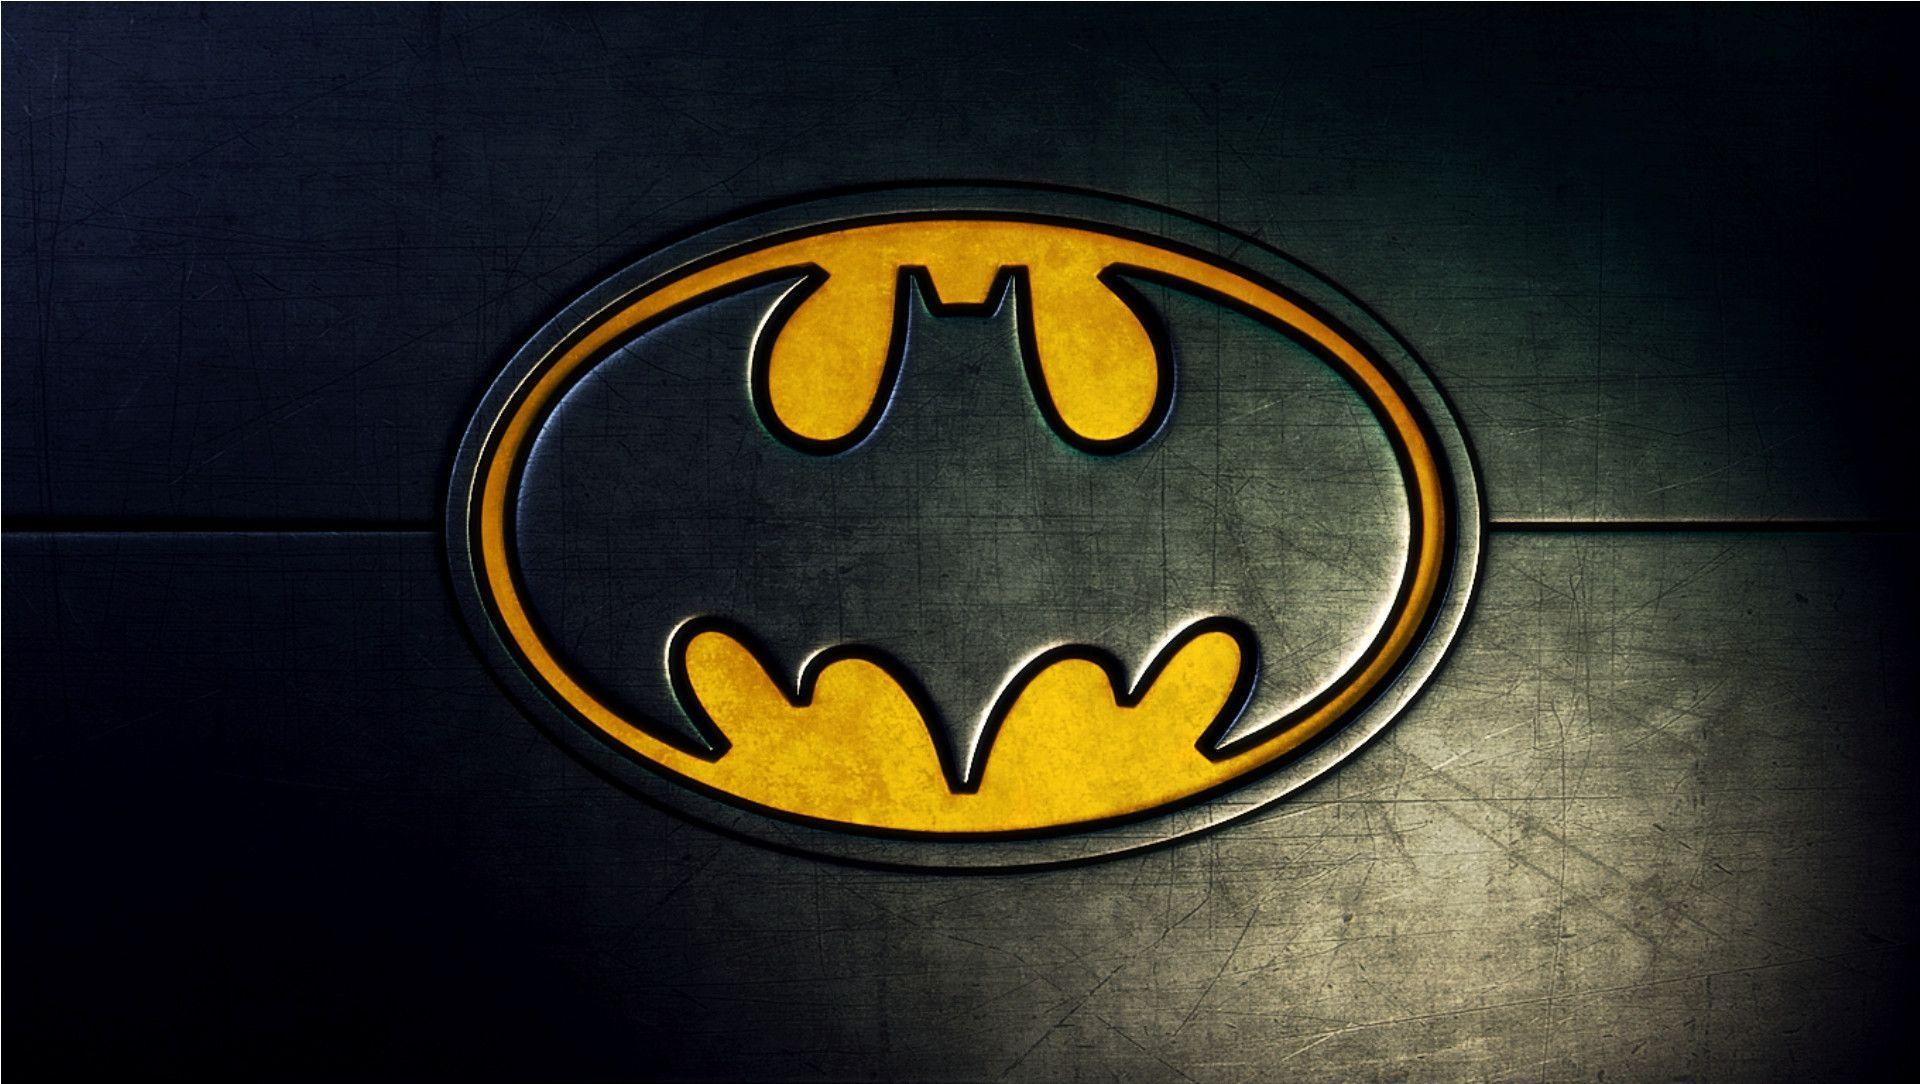 Batman Symbol Wallpaper on dc motor drawings